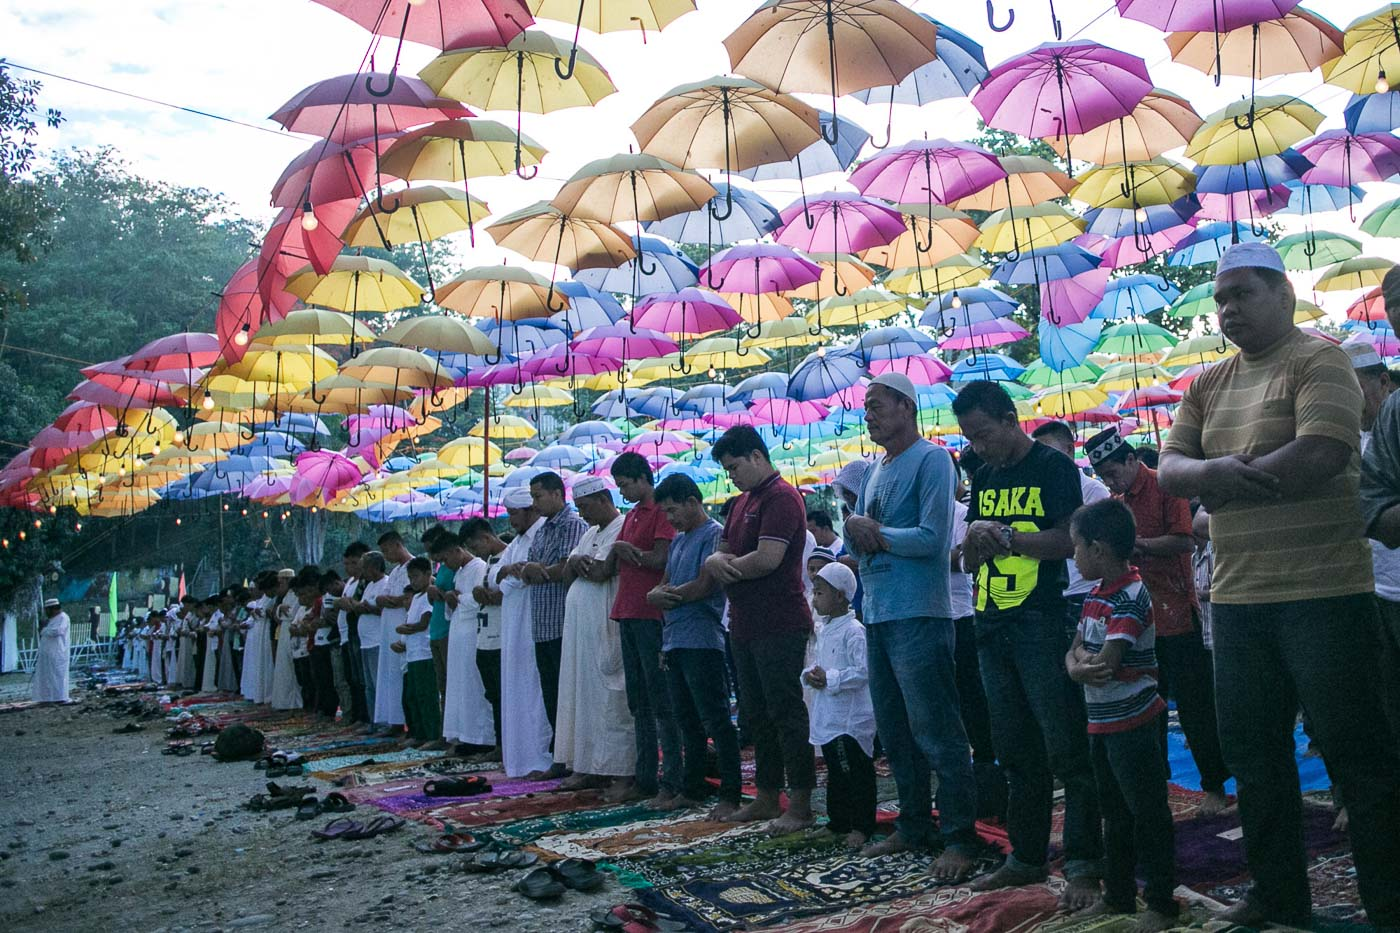 END OF RAMADAN. Muslims of Pikit town in North Cotabato celebrate Eid'l Fitr with a big congregational prayer at their town plaza on June 15, 2018. Photos by Manman Dejeto/Rappler